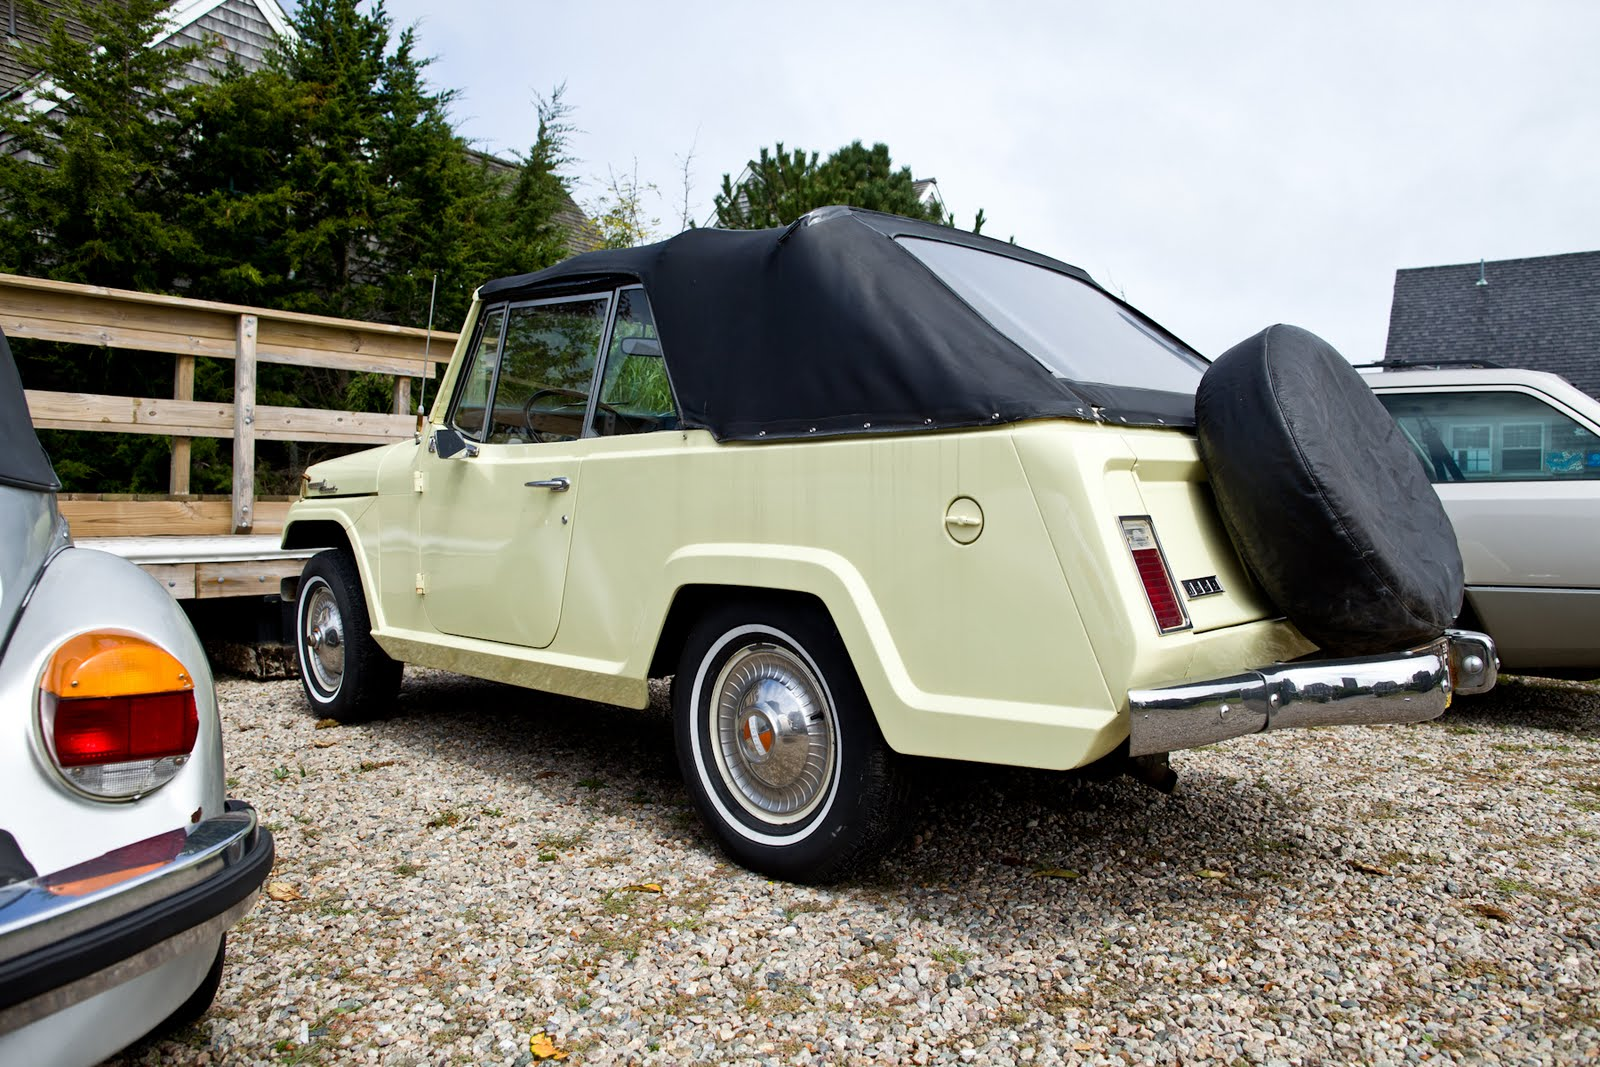 1967 Jeepster Commando for Sale http://www.thestreetpeep.com/2011/09